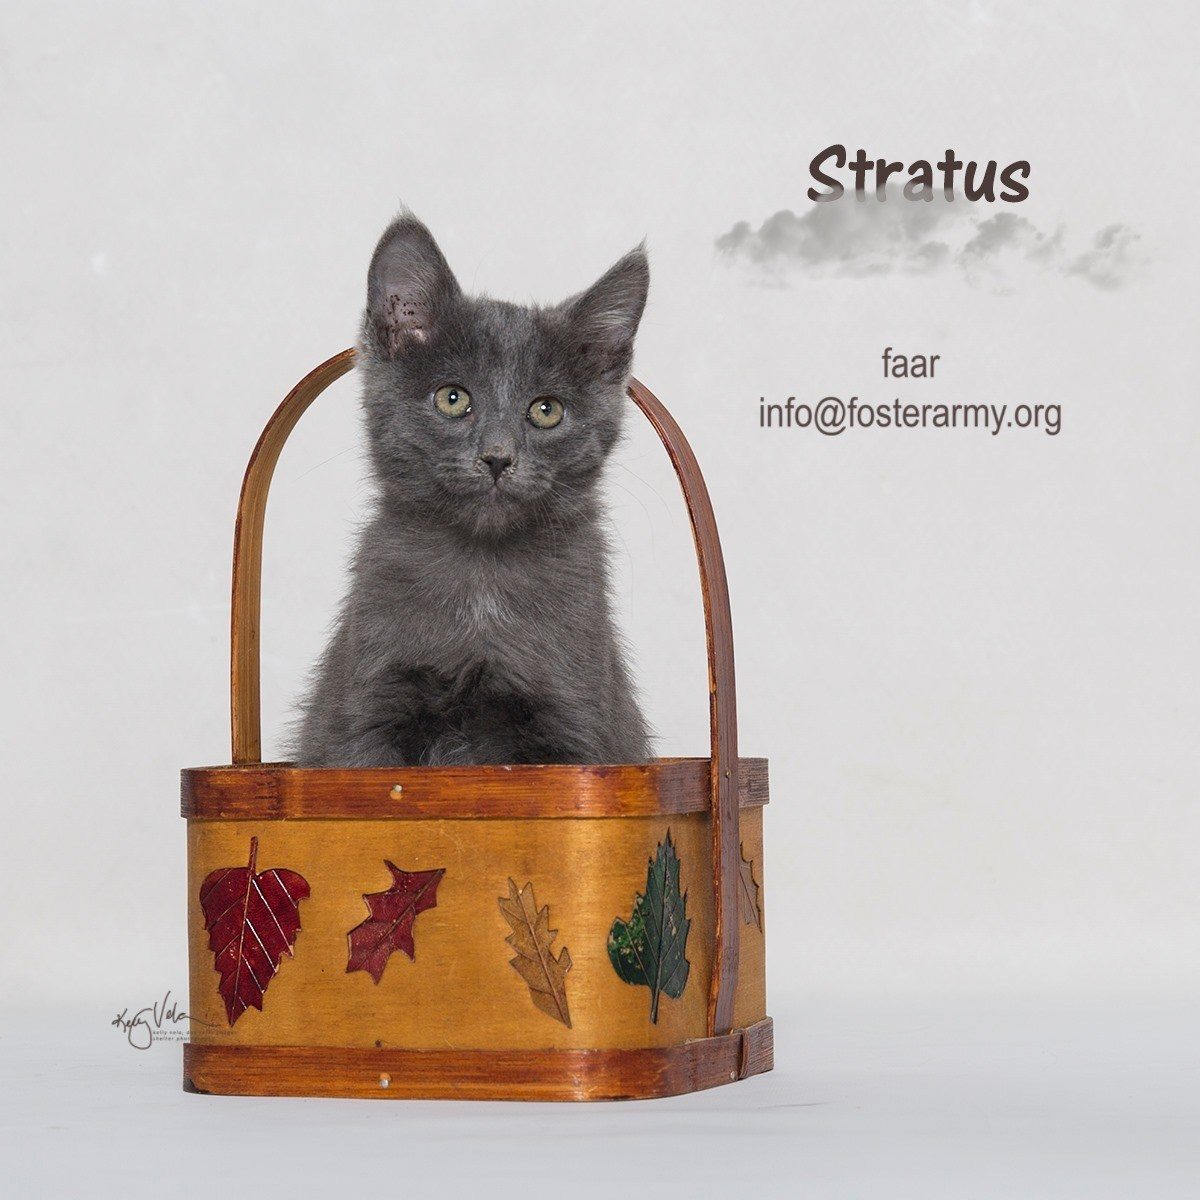 Adopt the purrfect kitty with Foster Army Animal Rescue